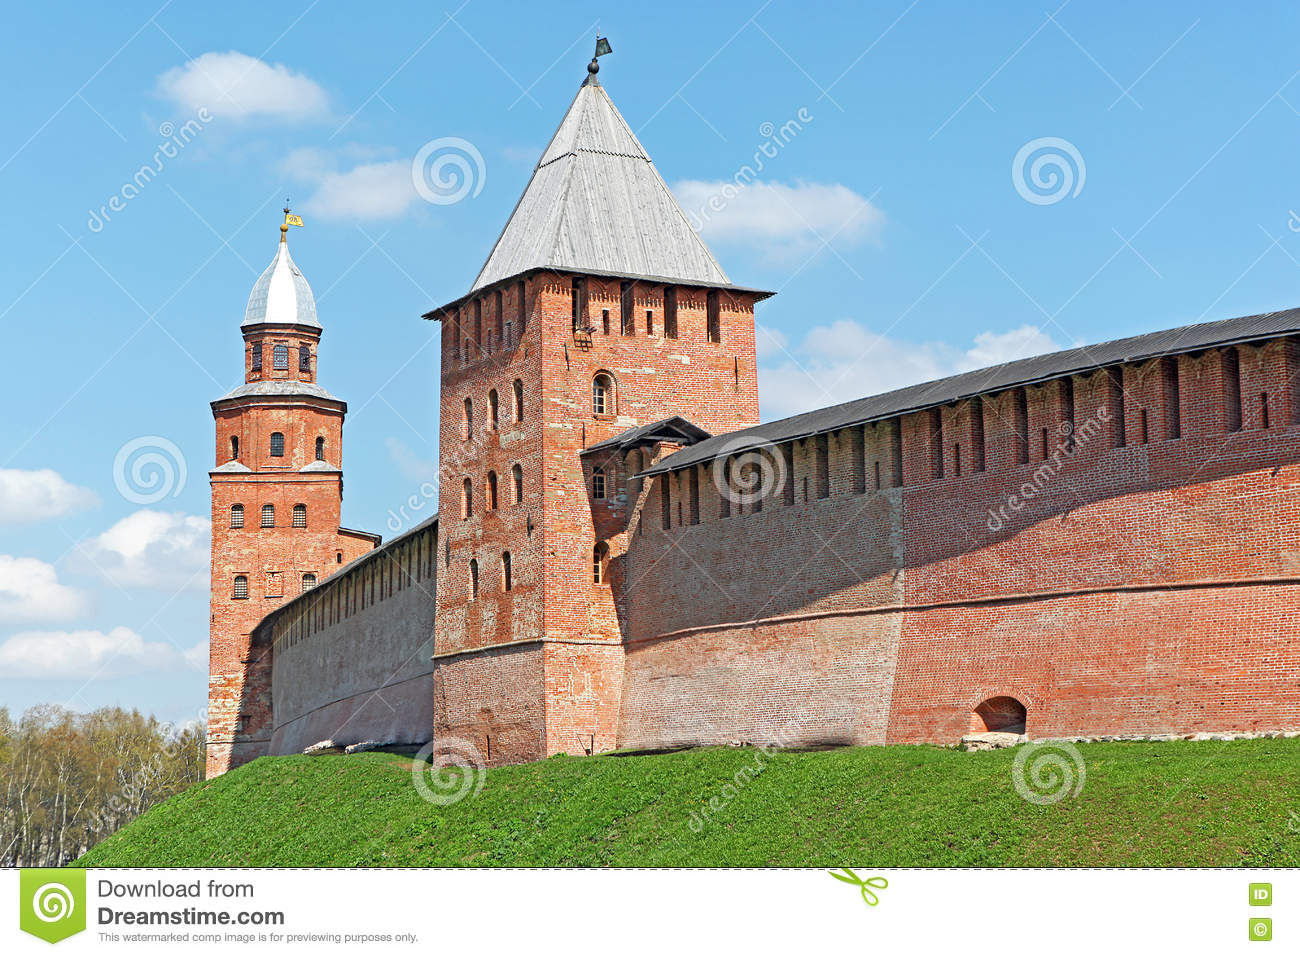 Veliky Novgorod: attractions. Description and photo 58